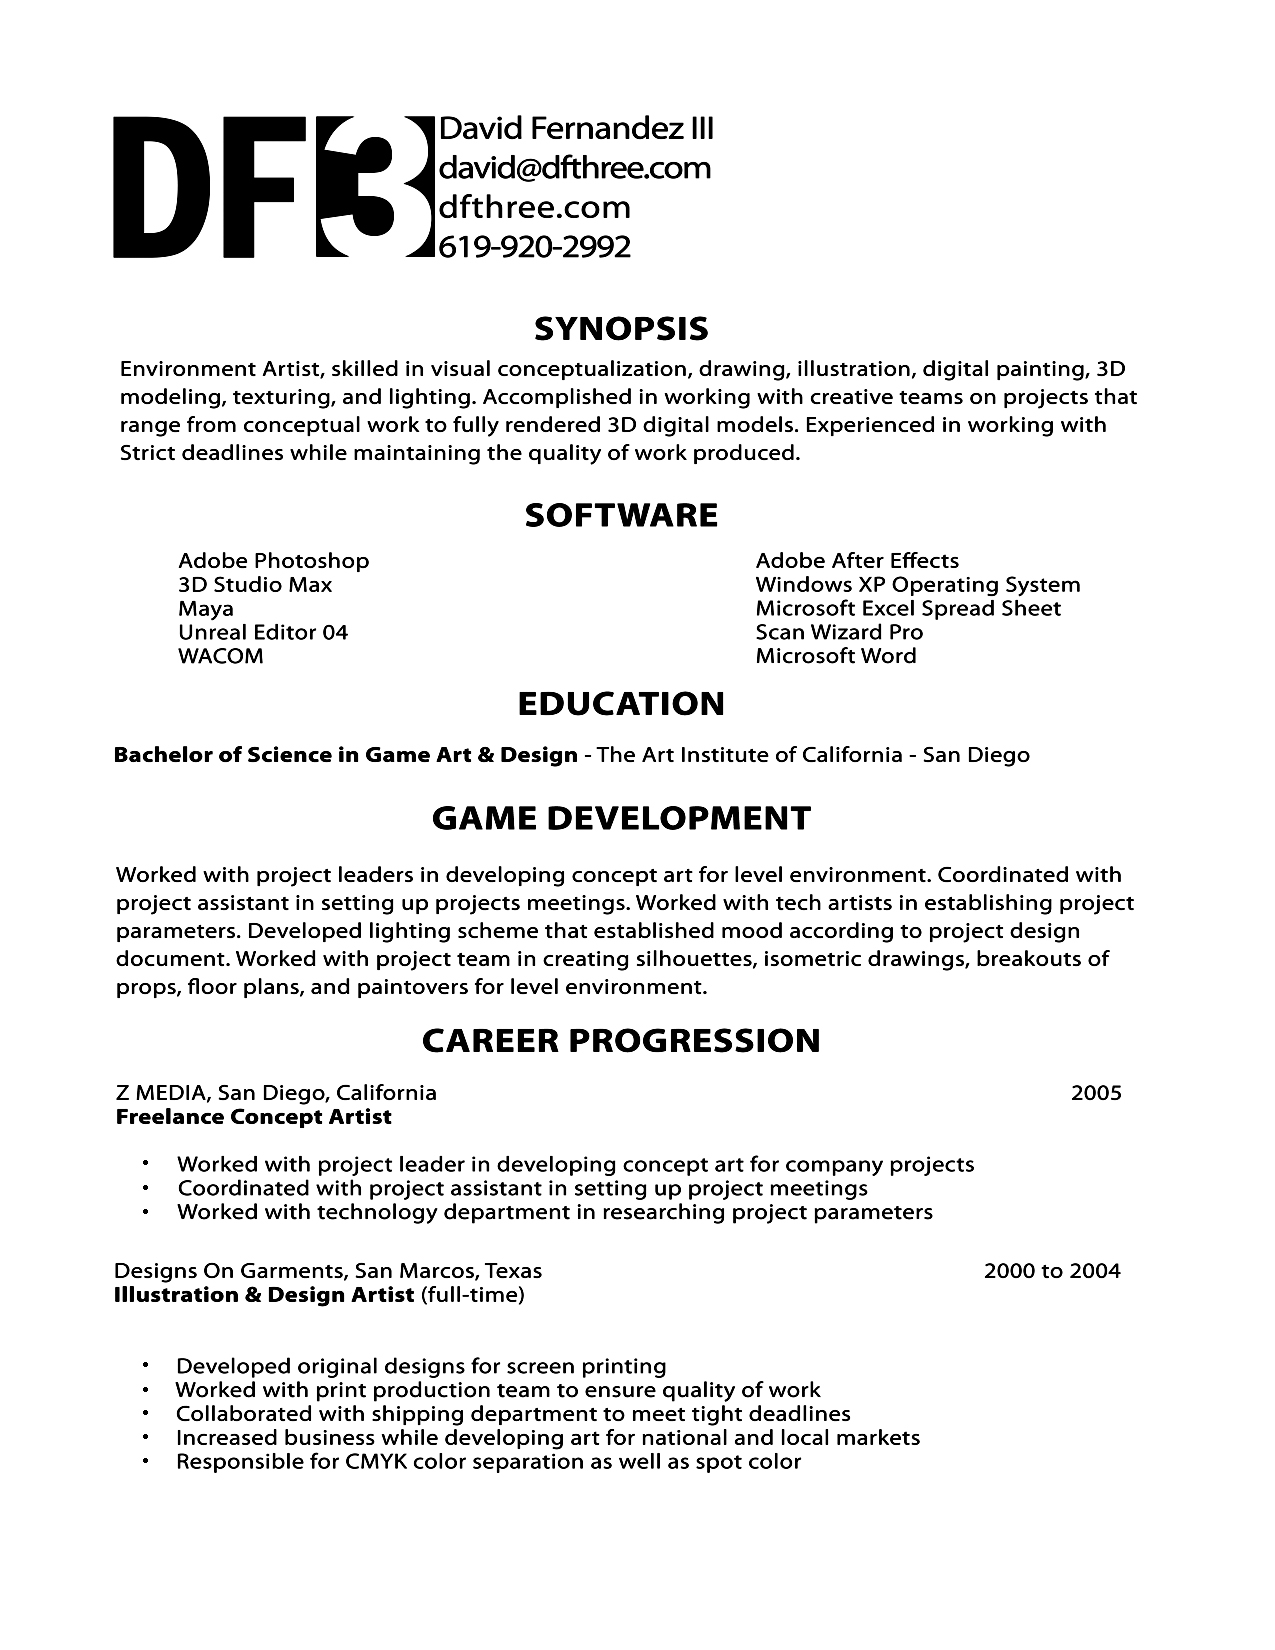 Opposenewapstandardsus  Unique Game Developer Resume Game Tester Resume Sample Game Tester  With Fetching Better Jobs Faster With Astounding Freelance Writer Resume Also Business Resume Examples In Addition Bartender Resume Sample And Graphic Design Resume Examples As Well As Resume Examples For Customer Service Additionally What Is The Objective In A Resume From Kelseymarieco With Opposenewapstandardsus  Fetching Game Developer Resume Game Tester Resume Sample Game Tester  With Astounding Better Jobs Faster And Unique Freelance Writer Resume Also Business Resume Examples In Addition Bartender Resume Sample From Kelseymarieco